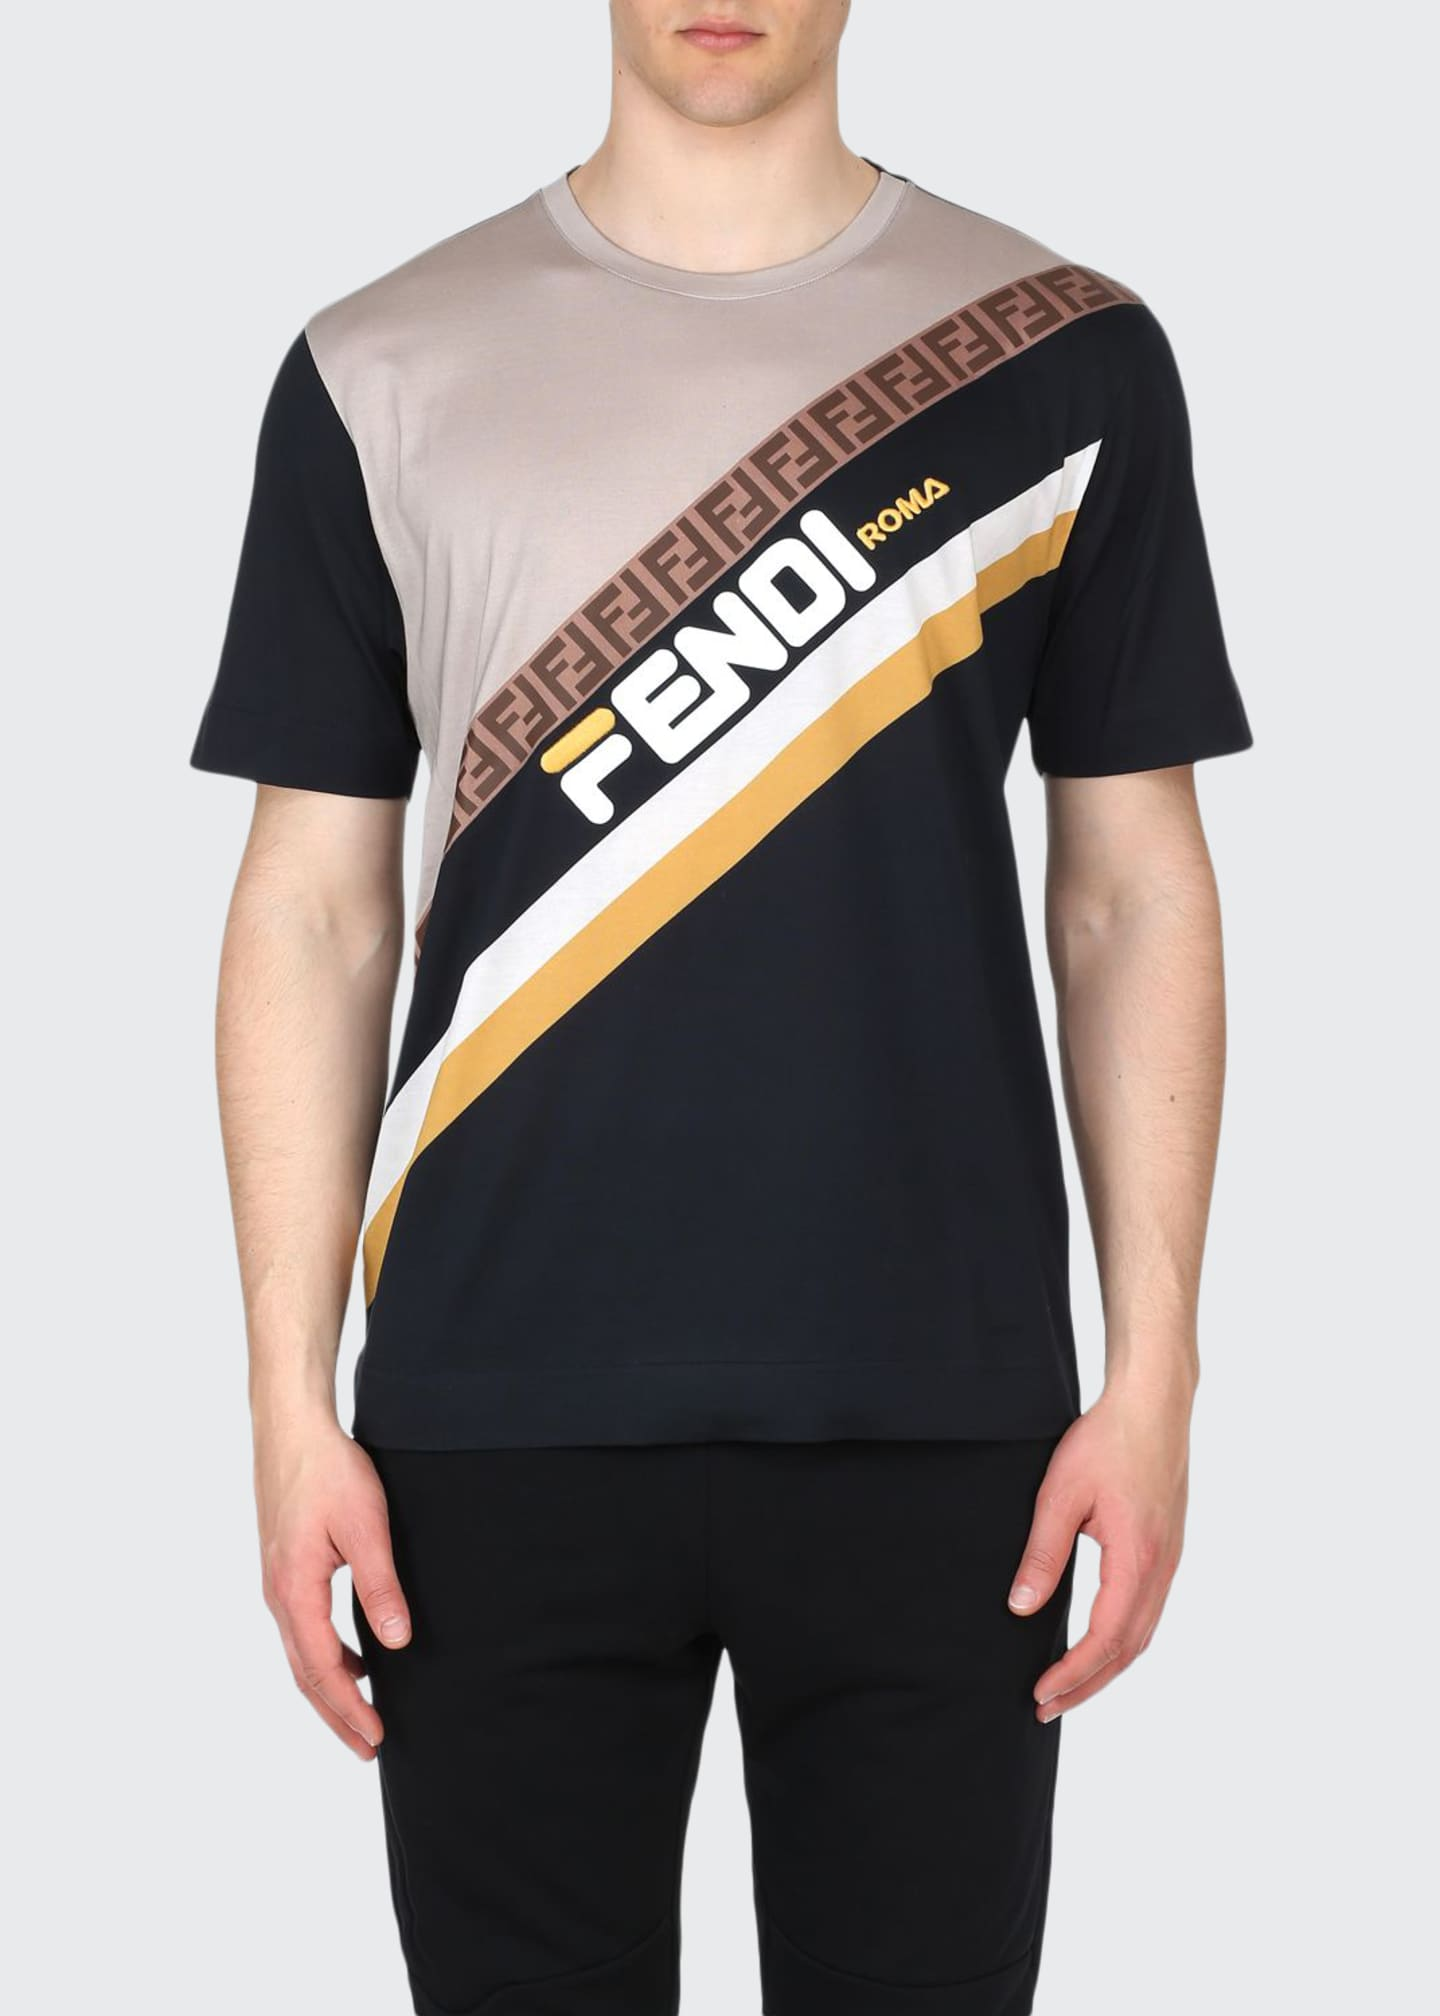 Fendi Men's Fendi Mania Stripe Oversized Pattern T-Shirt